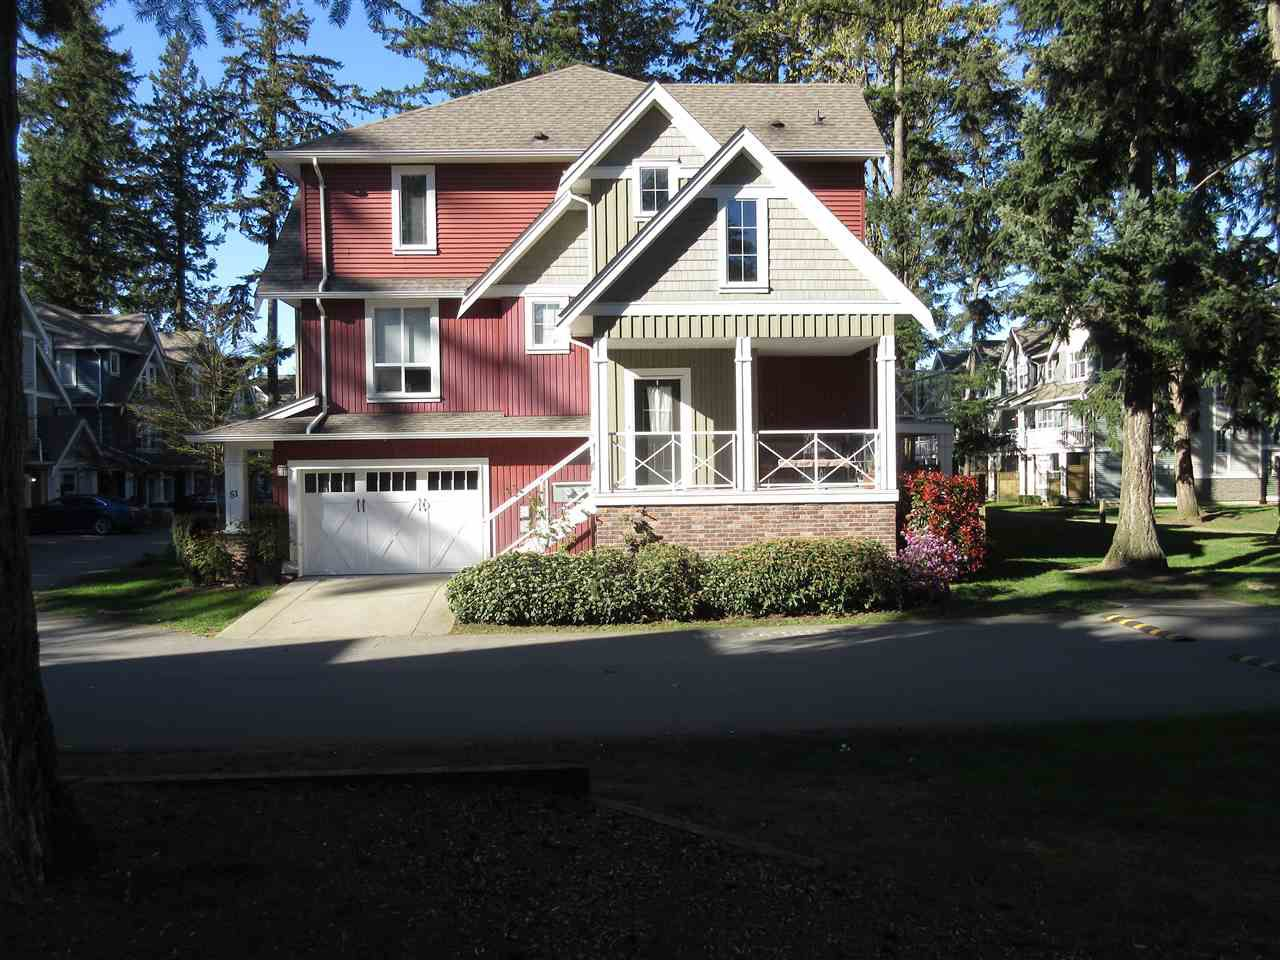 """Main Photo: 51 5837 SAPPERS Way in Chilliwack: Vedder S Watson-Promontory Townhouse for sale in """"The Woods at Garrison Crossing"""" (Sardis)  : MLS®# R2050967"""